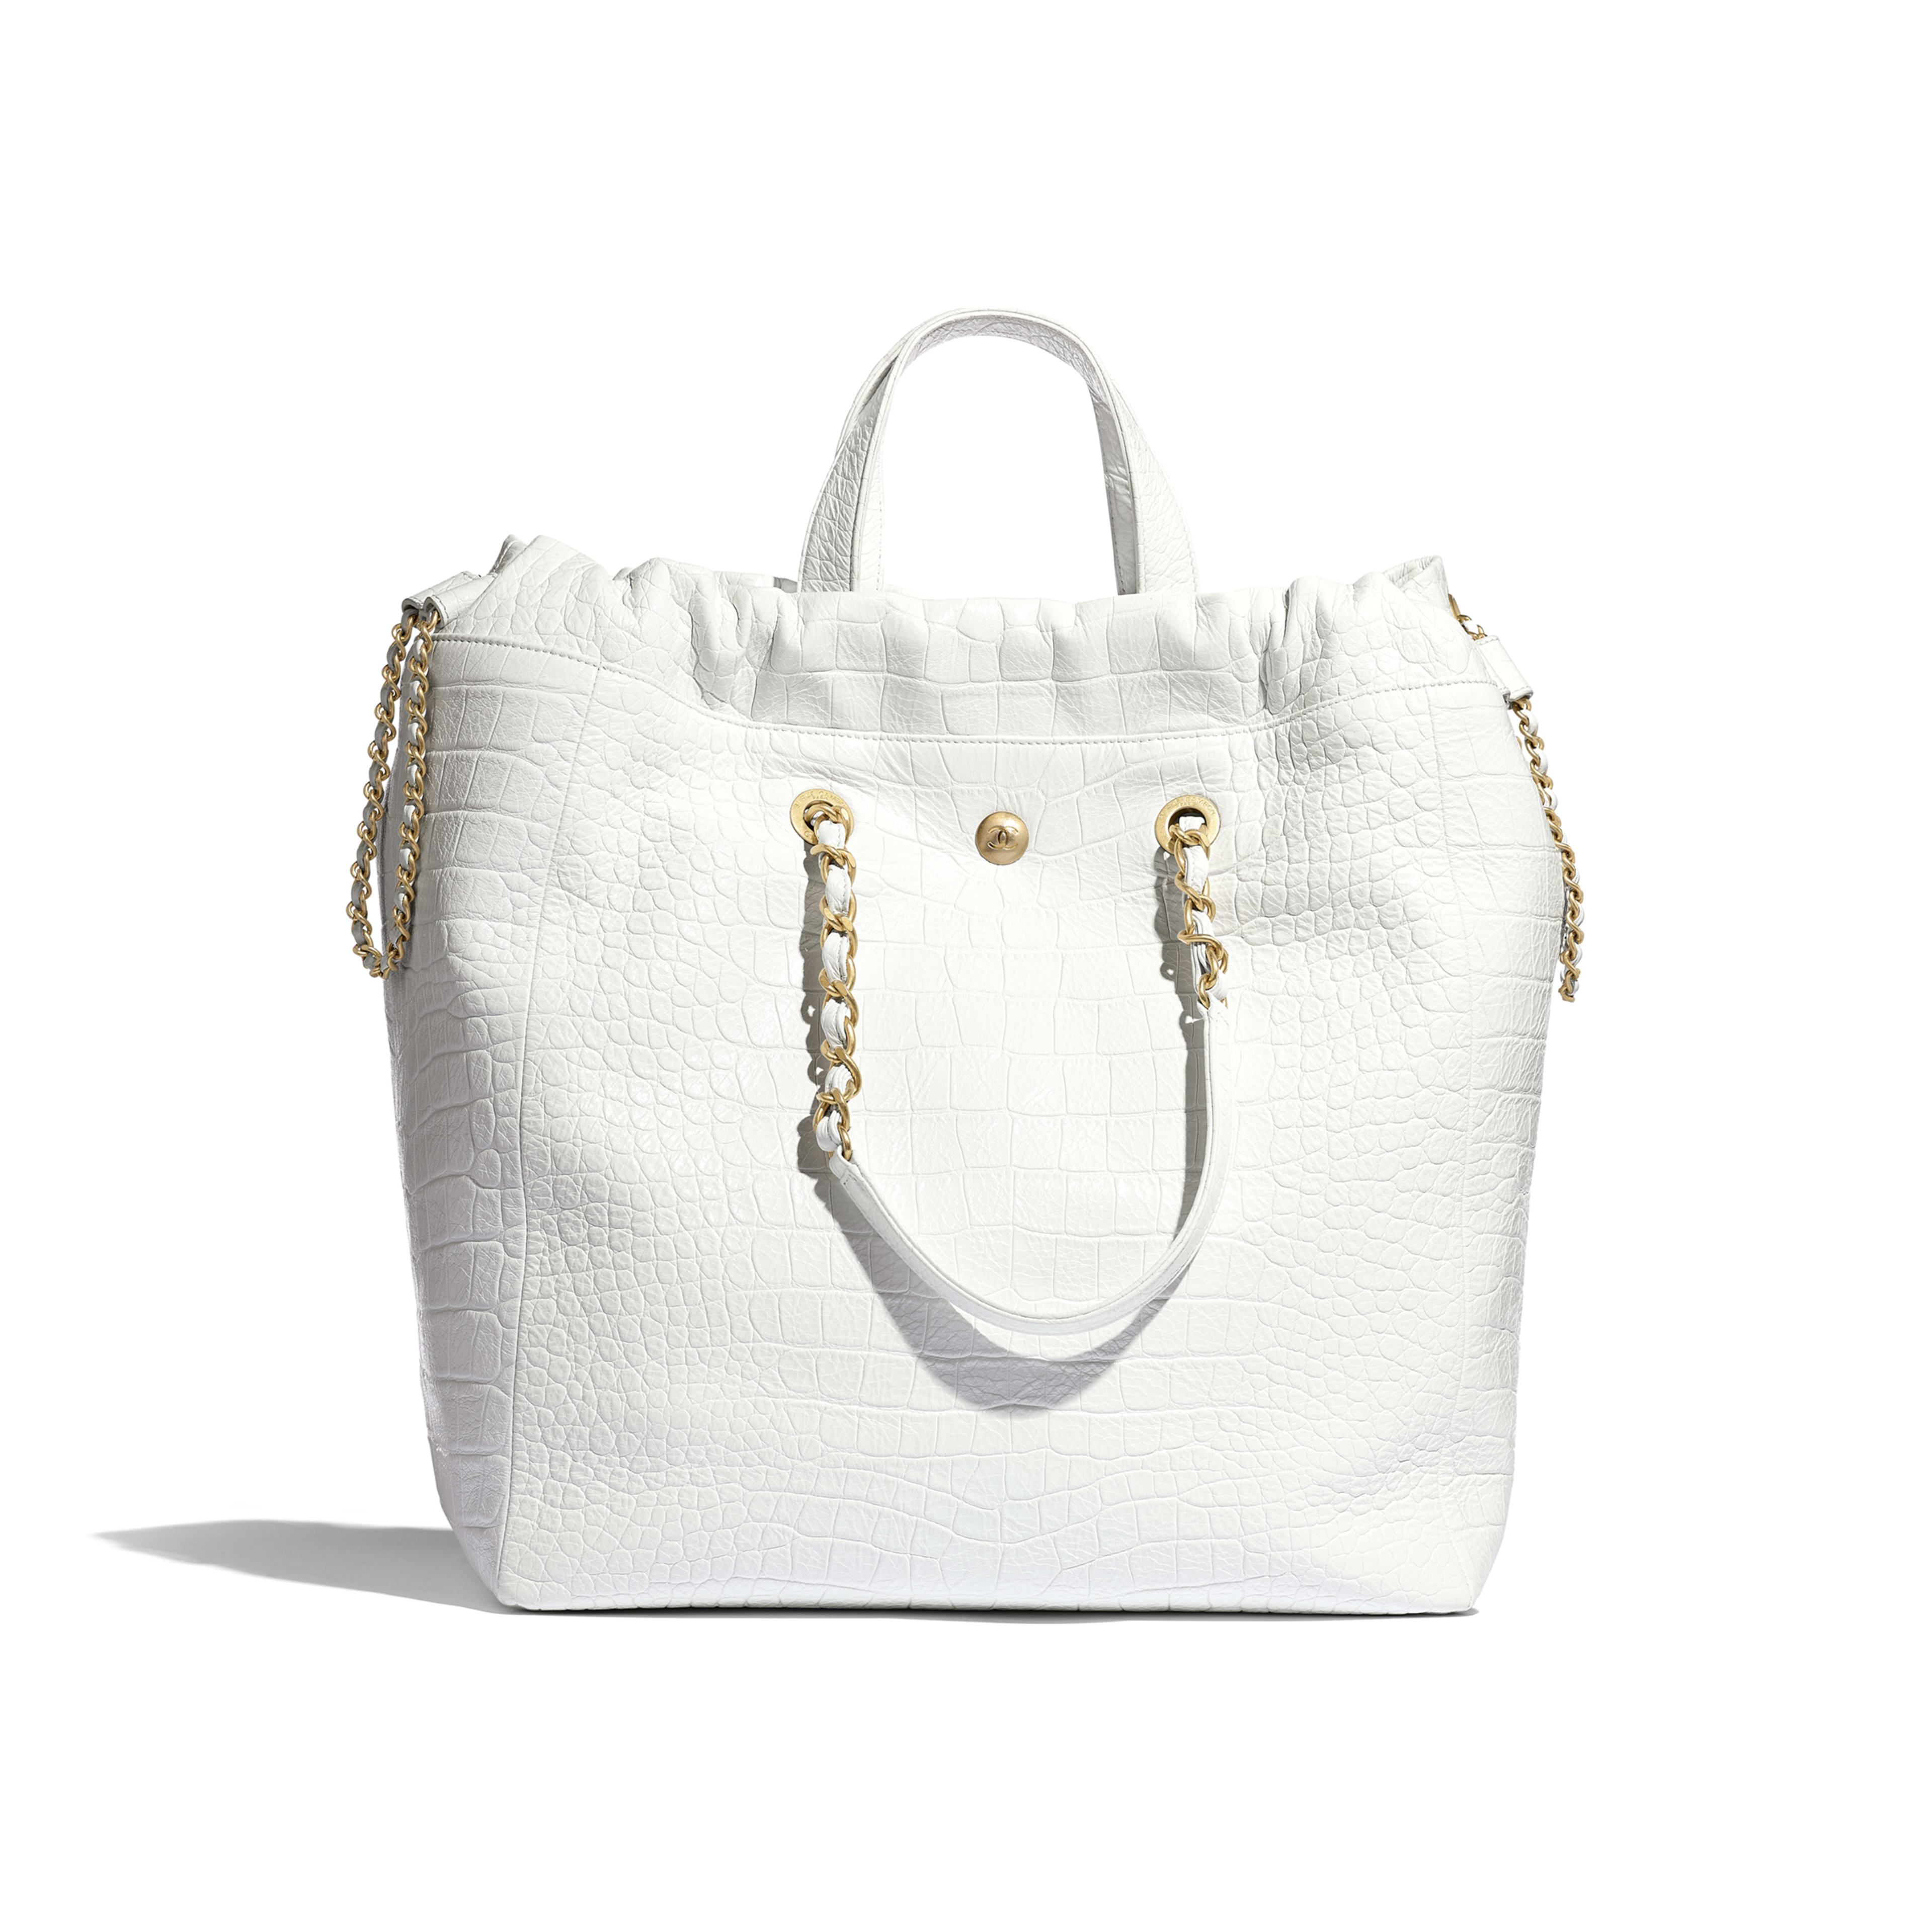 Large Shopping Bag - White - Crocodile Embossed Printed Leather & Gold-Tone Metal - Alternative view - see full sized version